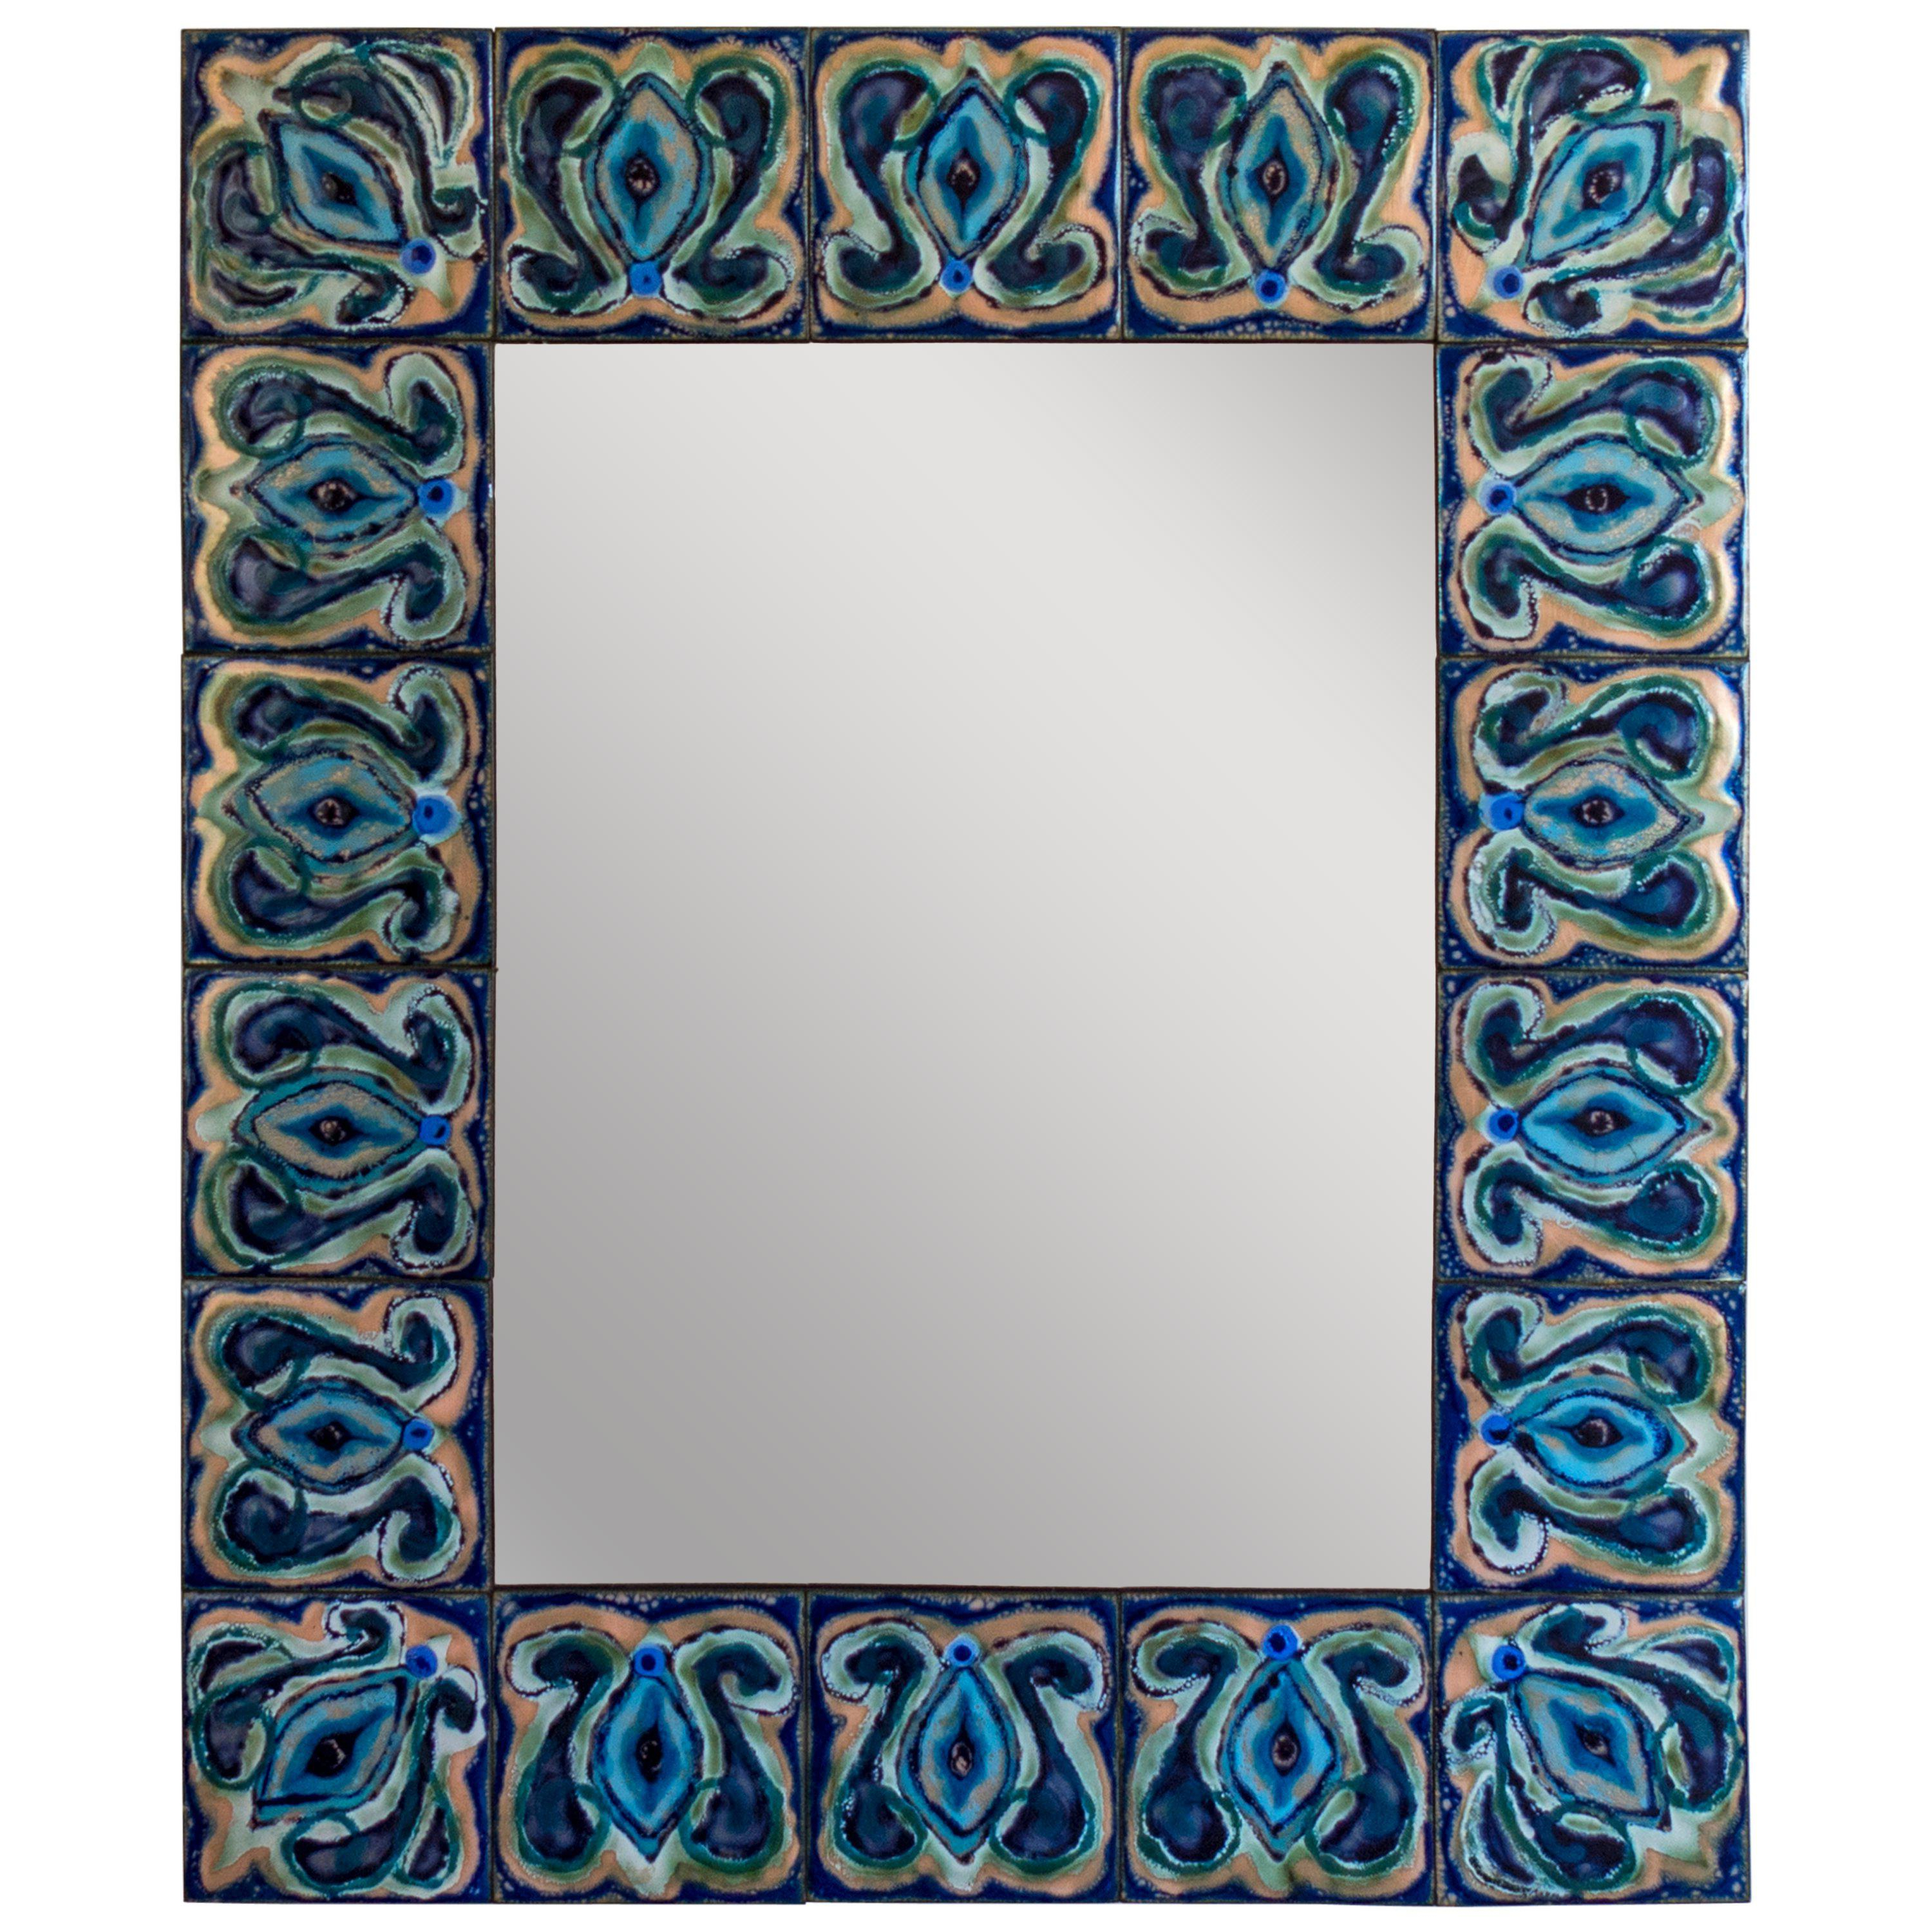 Well Known Bodil Eje, Unique Blue, Turquoise And Indigo Enameled Copper Wall Mirror With Turquoise Wall Mirrors (View 19 of 20)